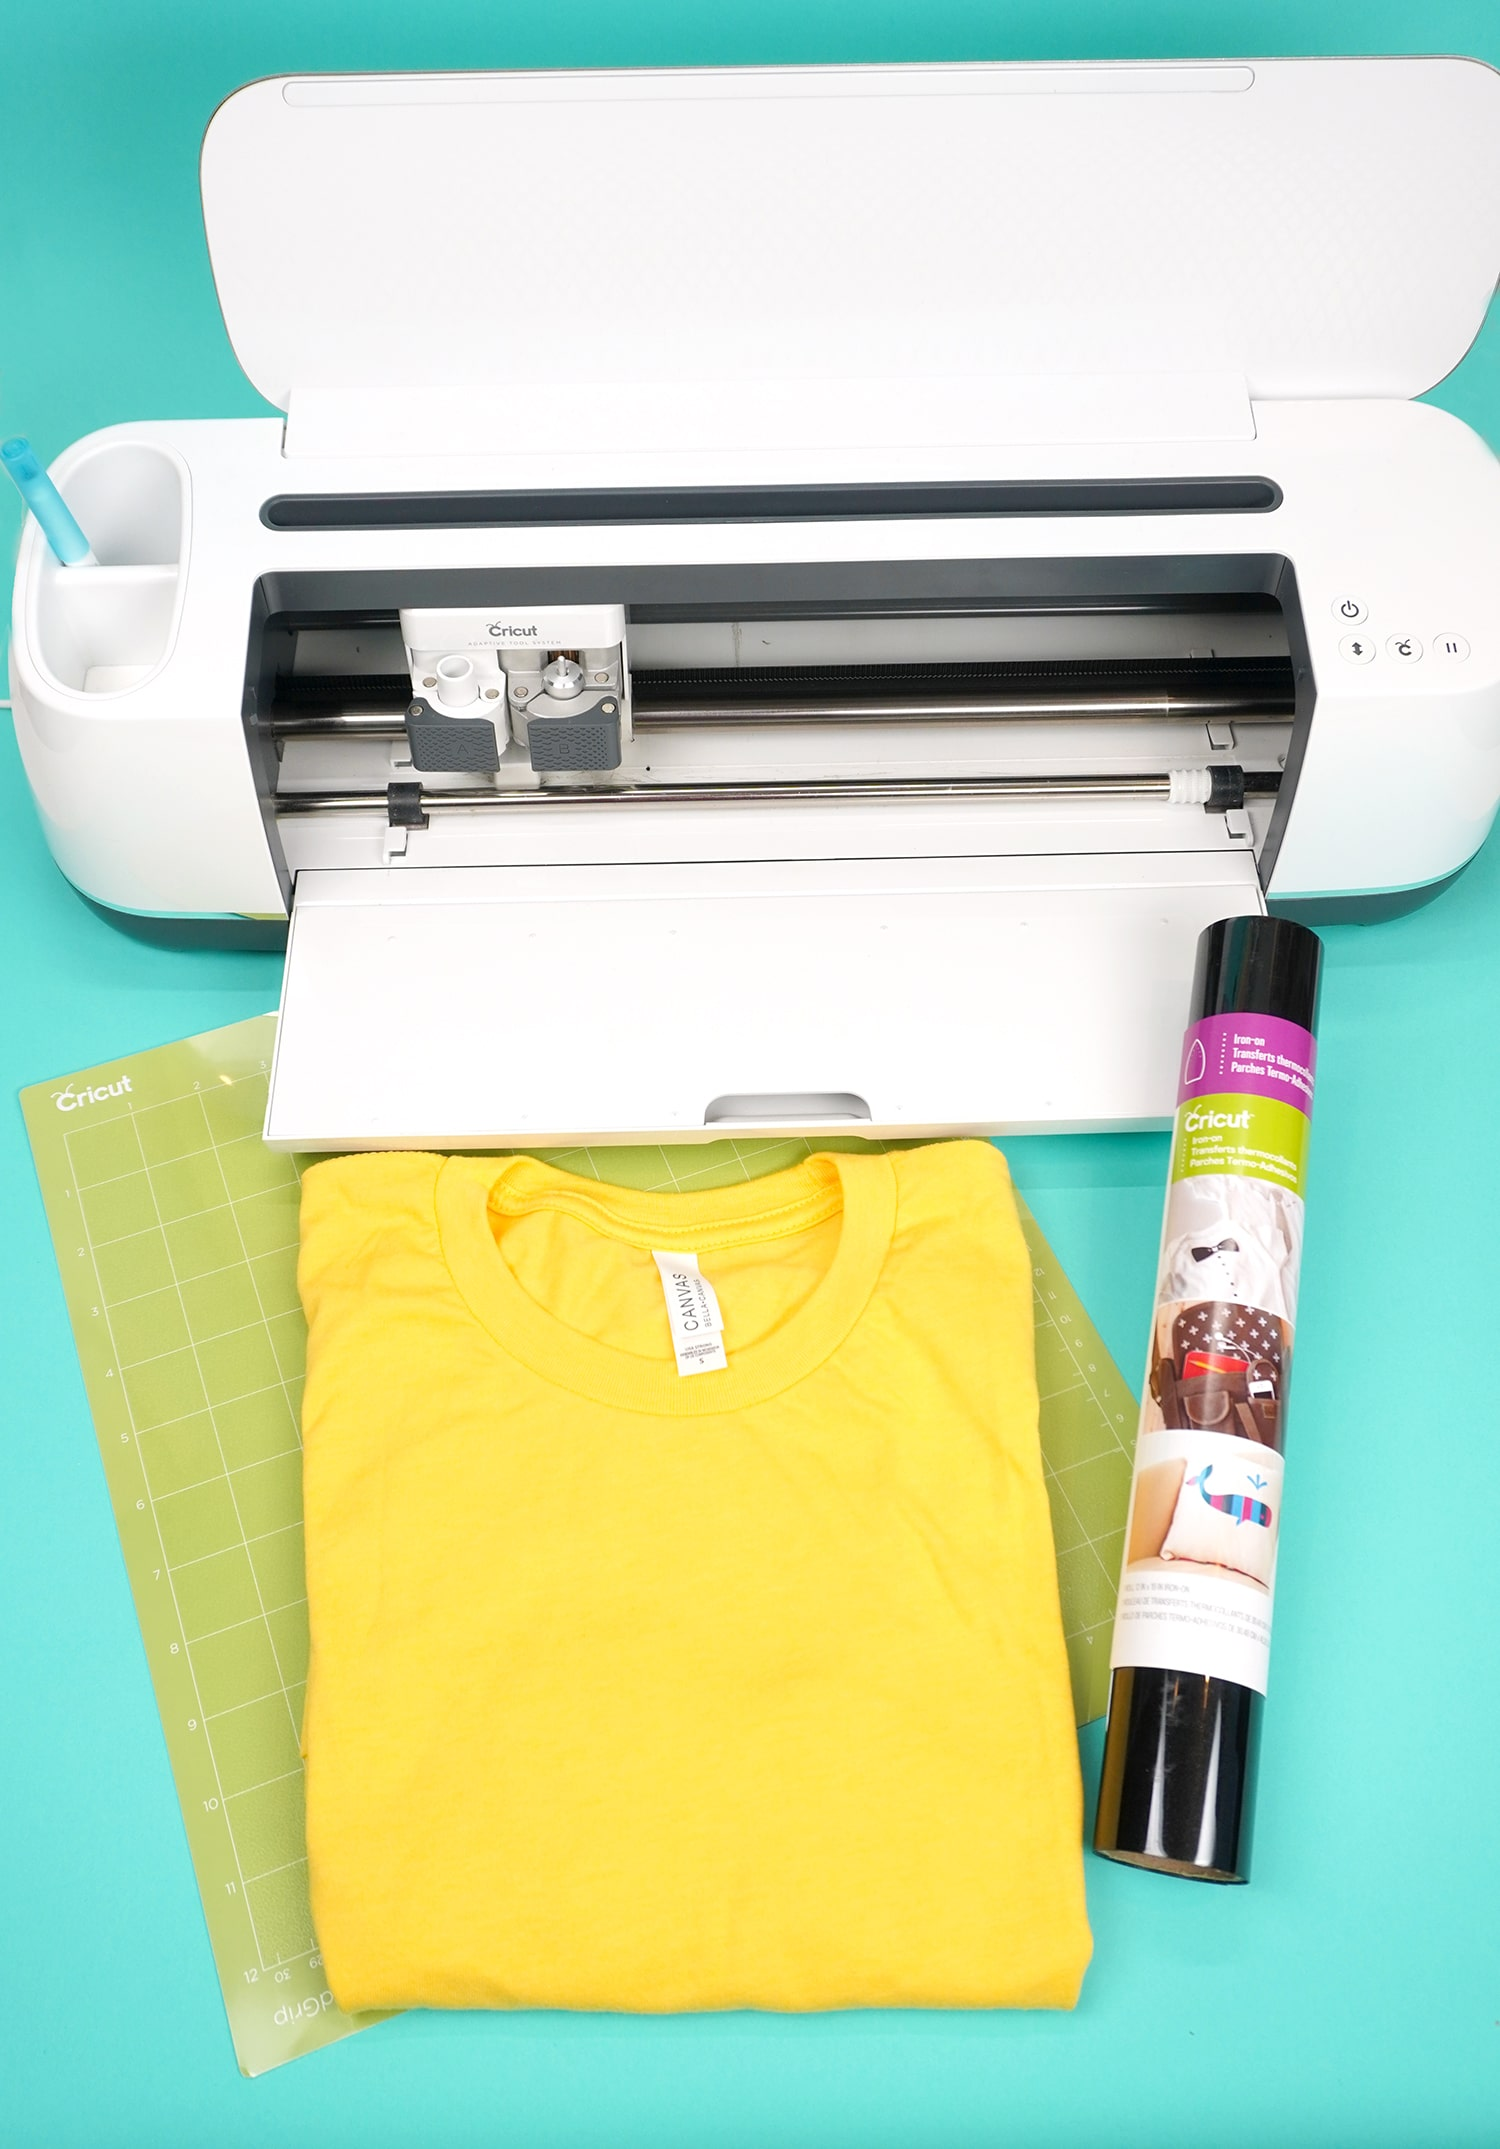 Supplies for making shirts with Cricut Iron-on vinyl